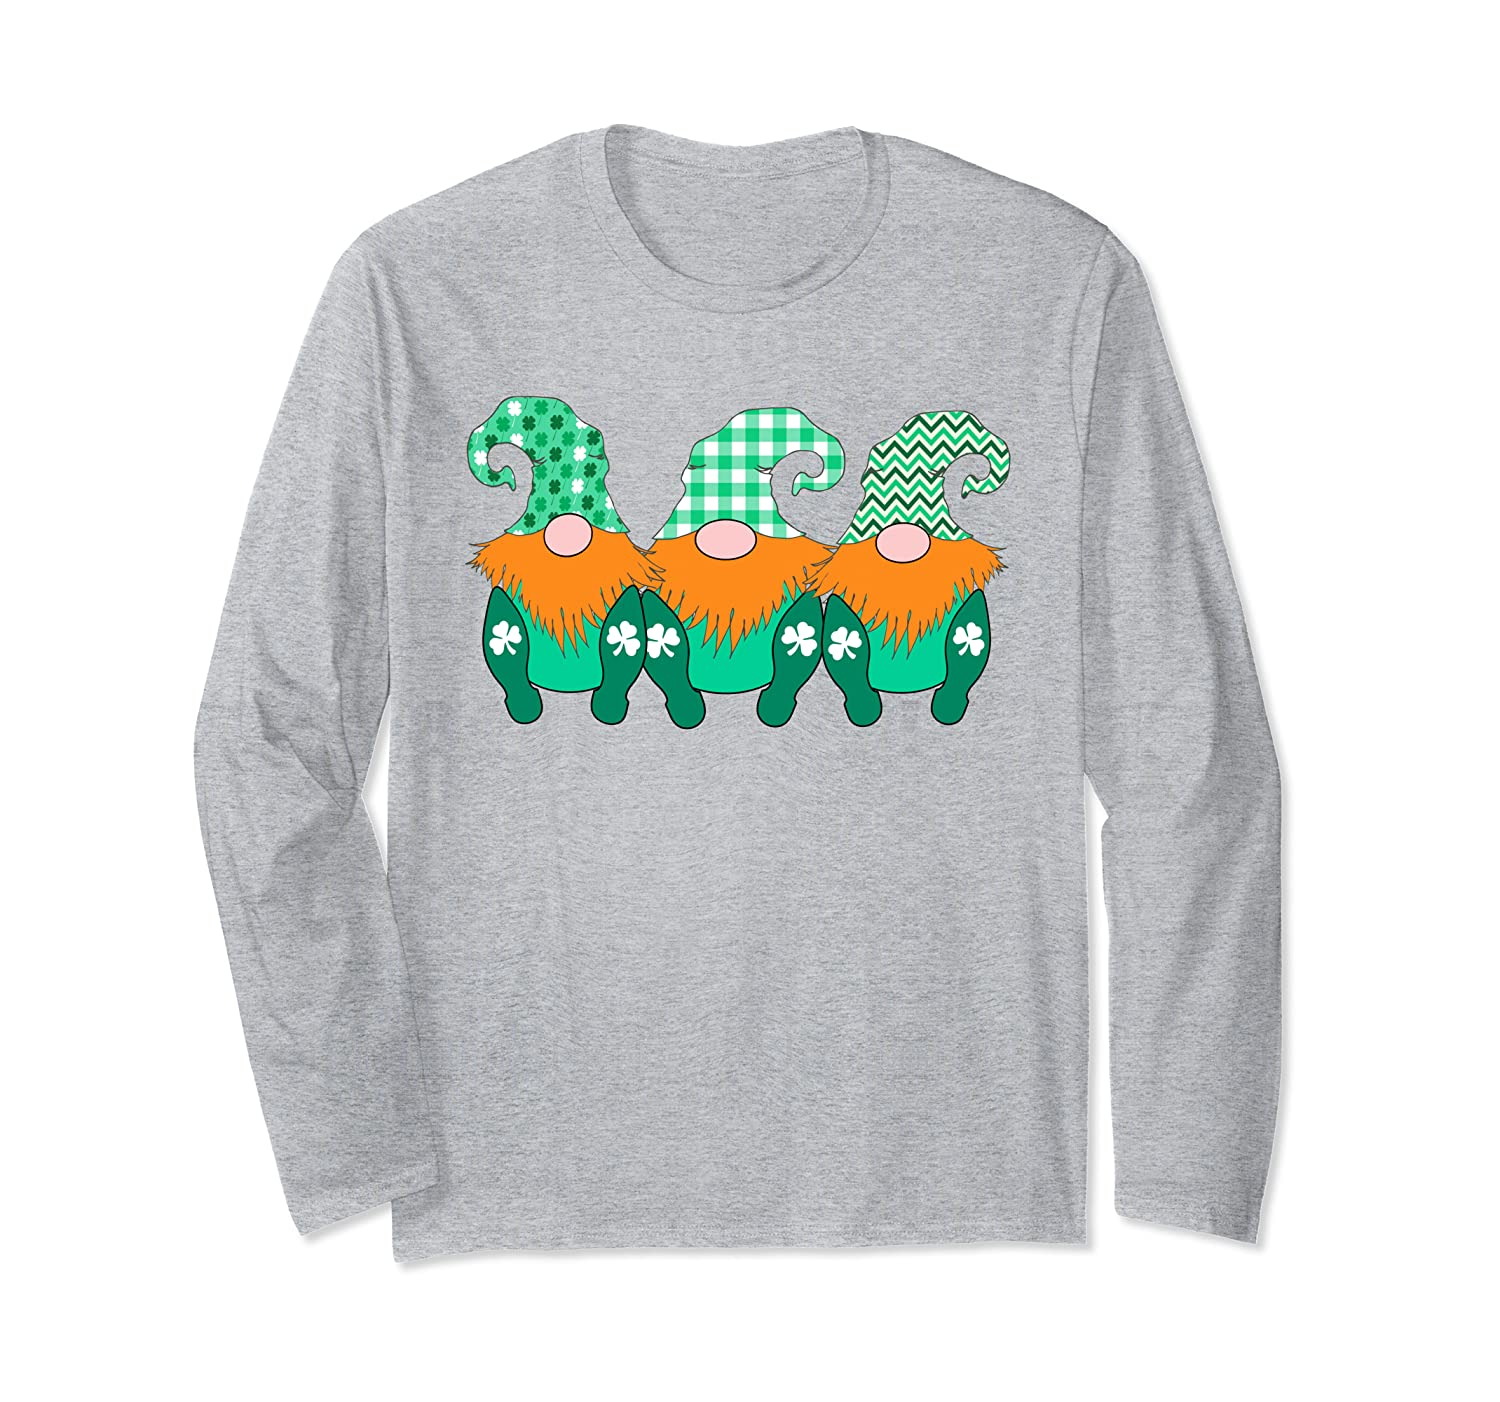 3 Cute Irish Gnomes Leprechauns Green Shamrocks Long Sleeve T-Shirt-Awarplus